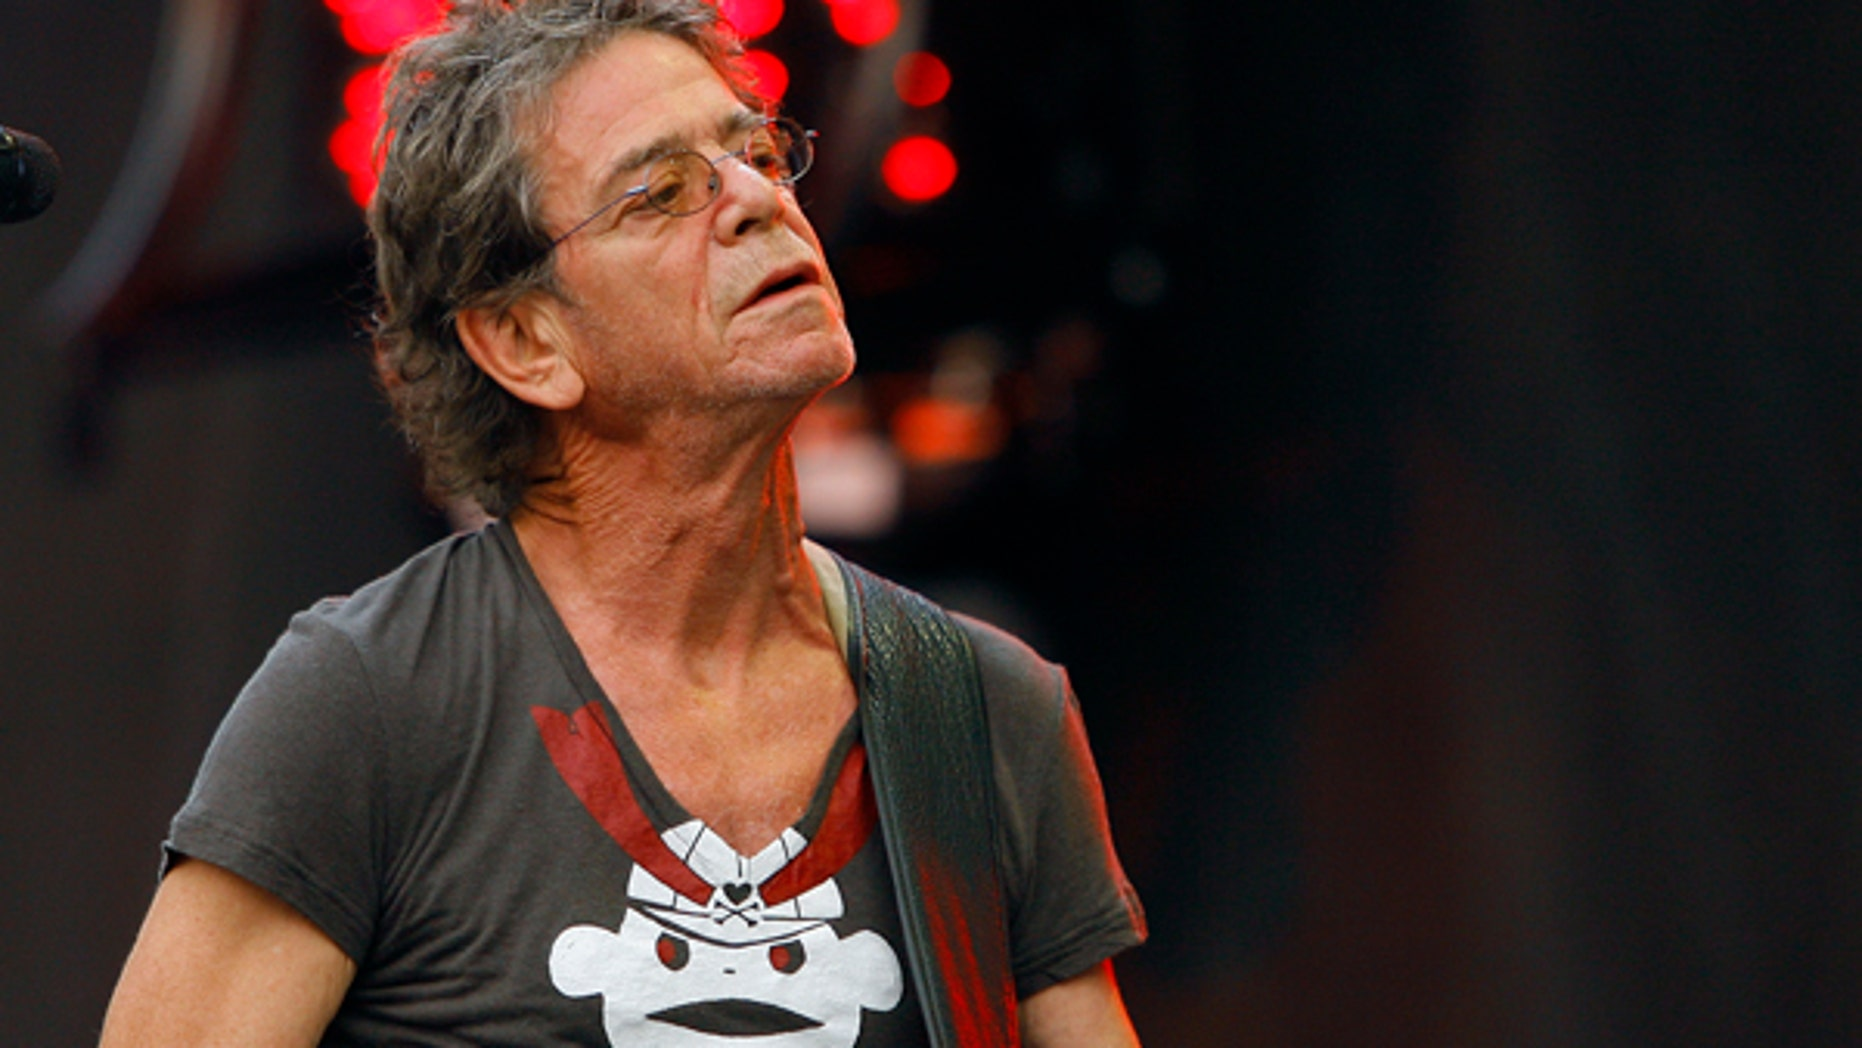 FILE - In this Sunday, Aug. 9, 2009 file photo, Lou Reed performs at the Lollapalooza music festival, in Chicago. The New York Public Library for the Performing Arts has acquired the complete archives of Lou Reed. The library and Reed's wife, musician Laurie Anderson, made the announcement Thursday, March 2, 2017, on what would have been his 75th birthday. (AP Photo/John Smierciak, File)